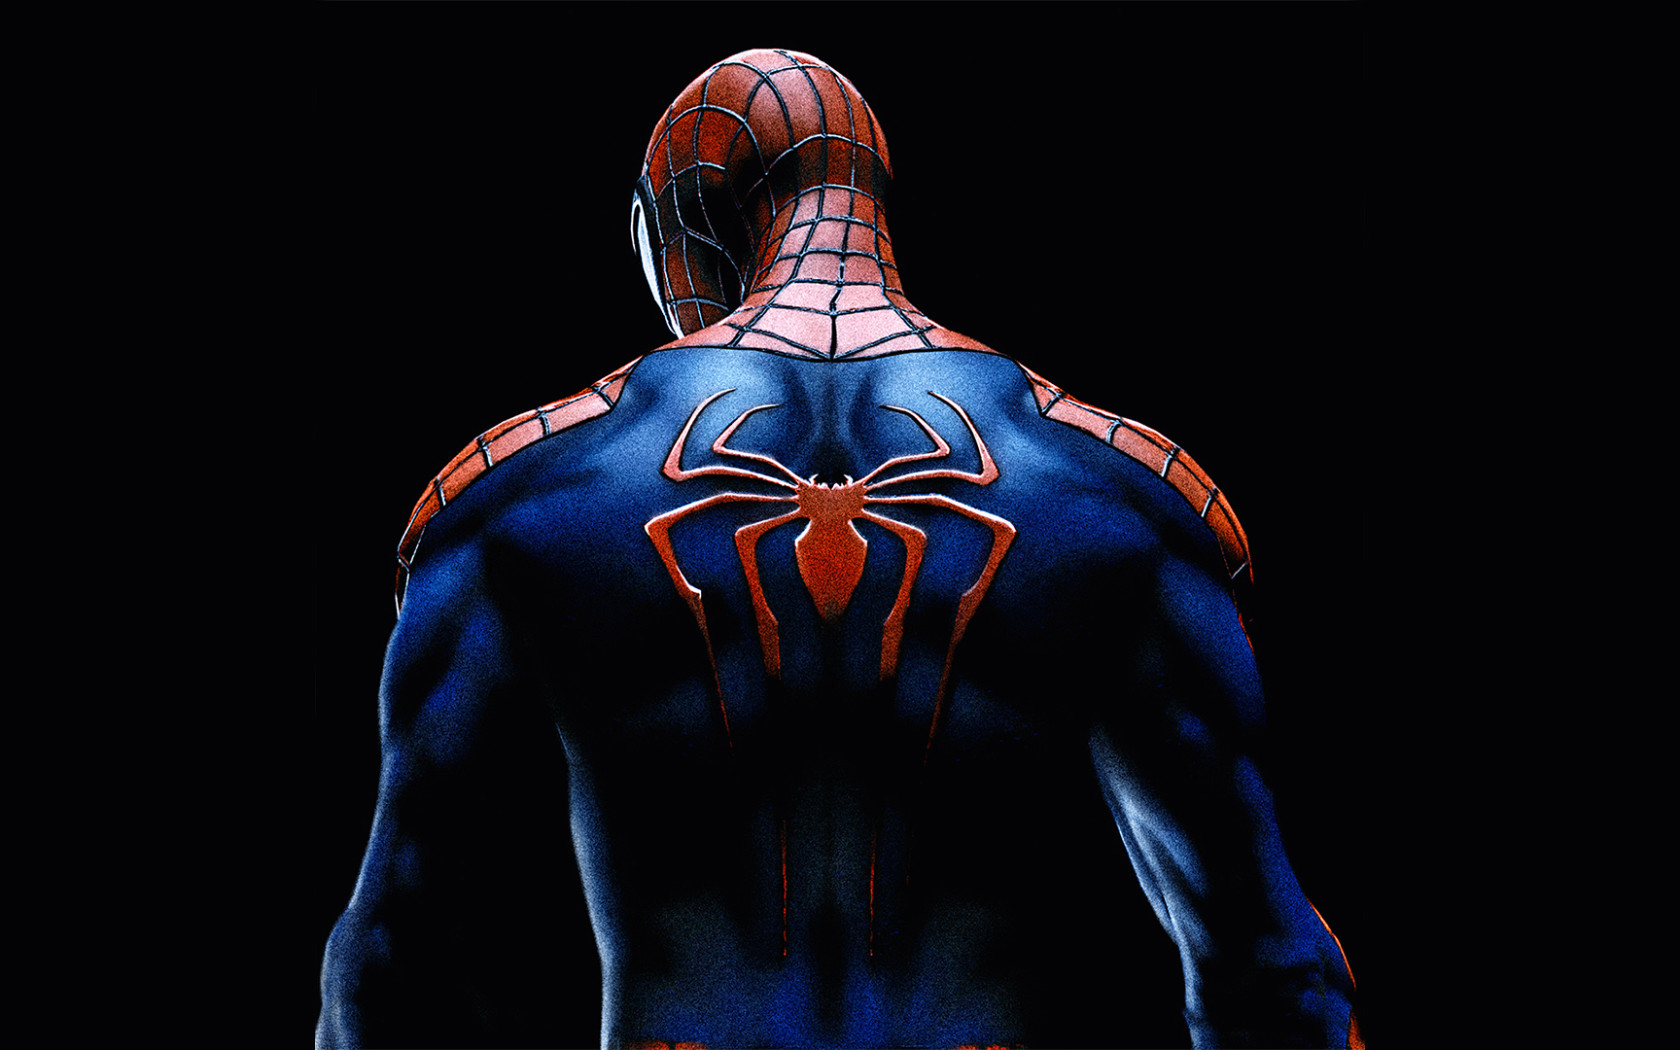 1680x1050 Spiderman Back Spider Logo 1680x1050 Resolution HD.